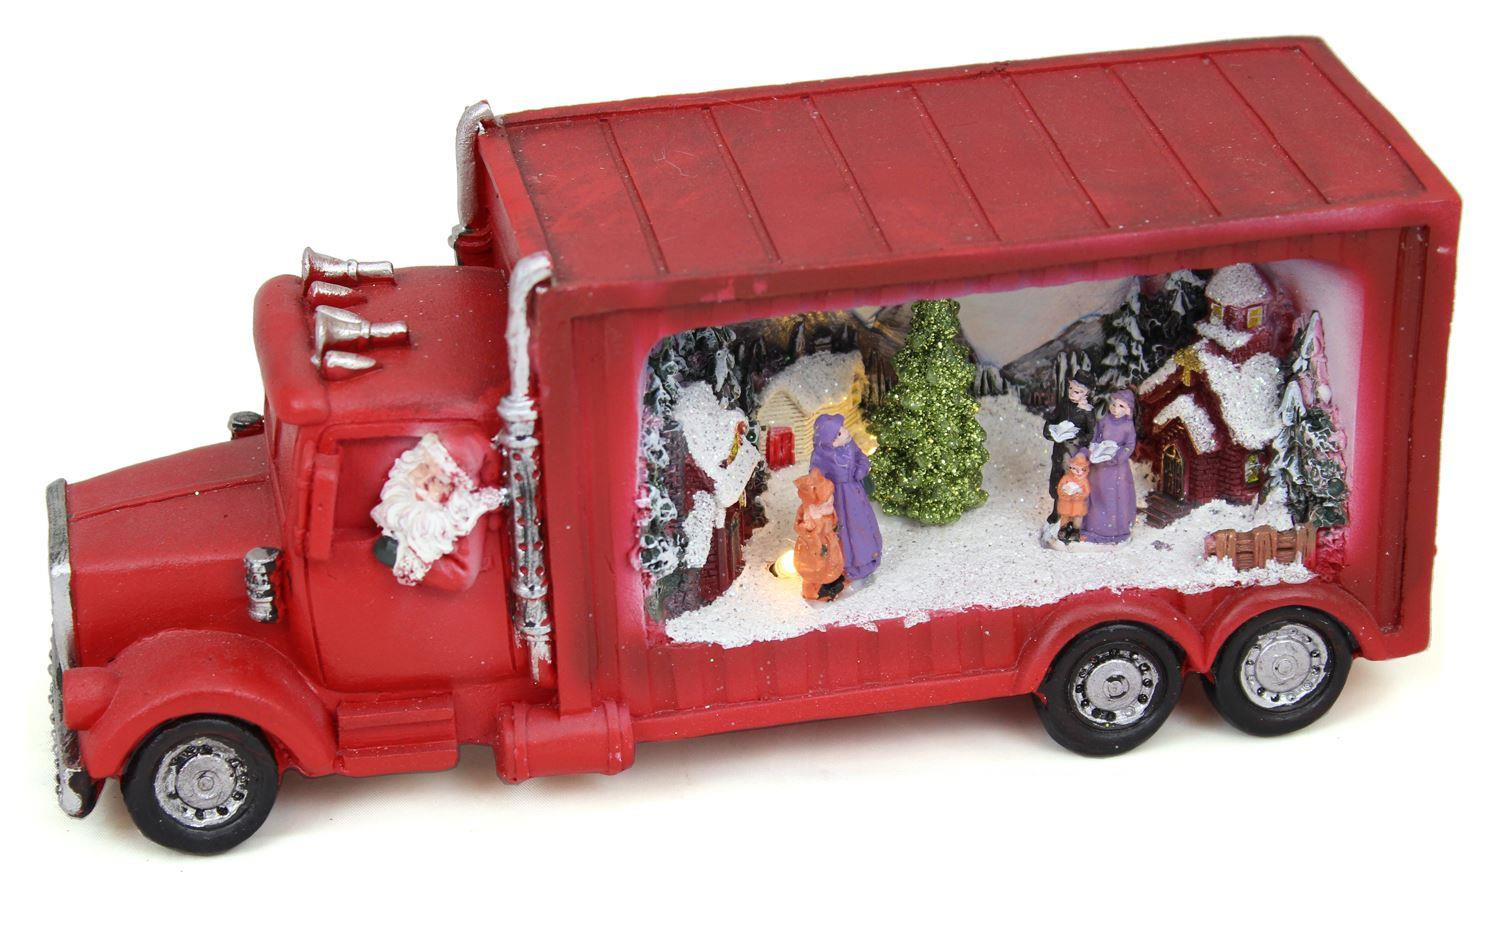 Christmas Carol Singers Decorations.Light Up Led Glitter Christmas Truck Santa Carol Singers Decoration